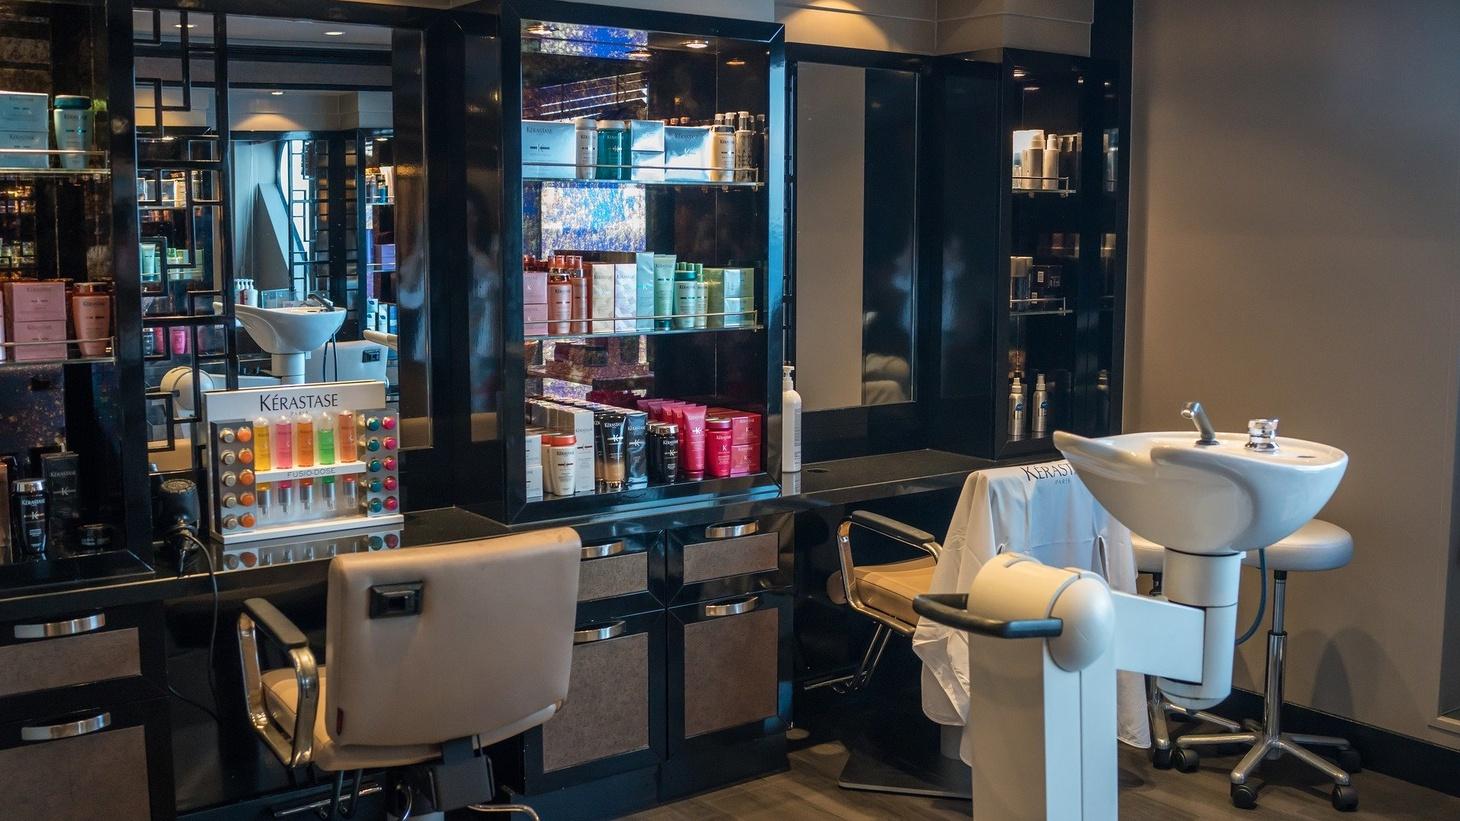 Hair salons are required to shut down again as coronavirus surges in California.